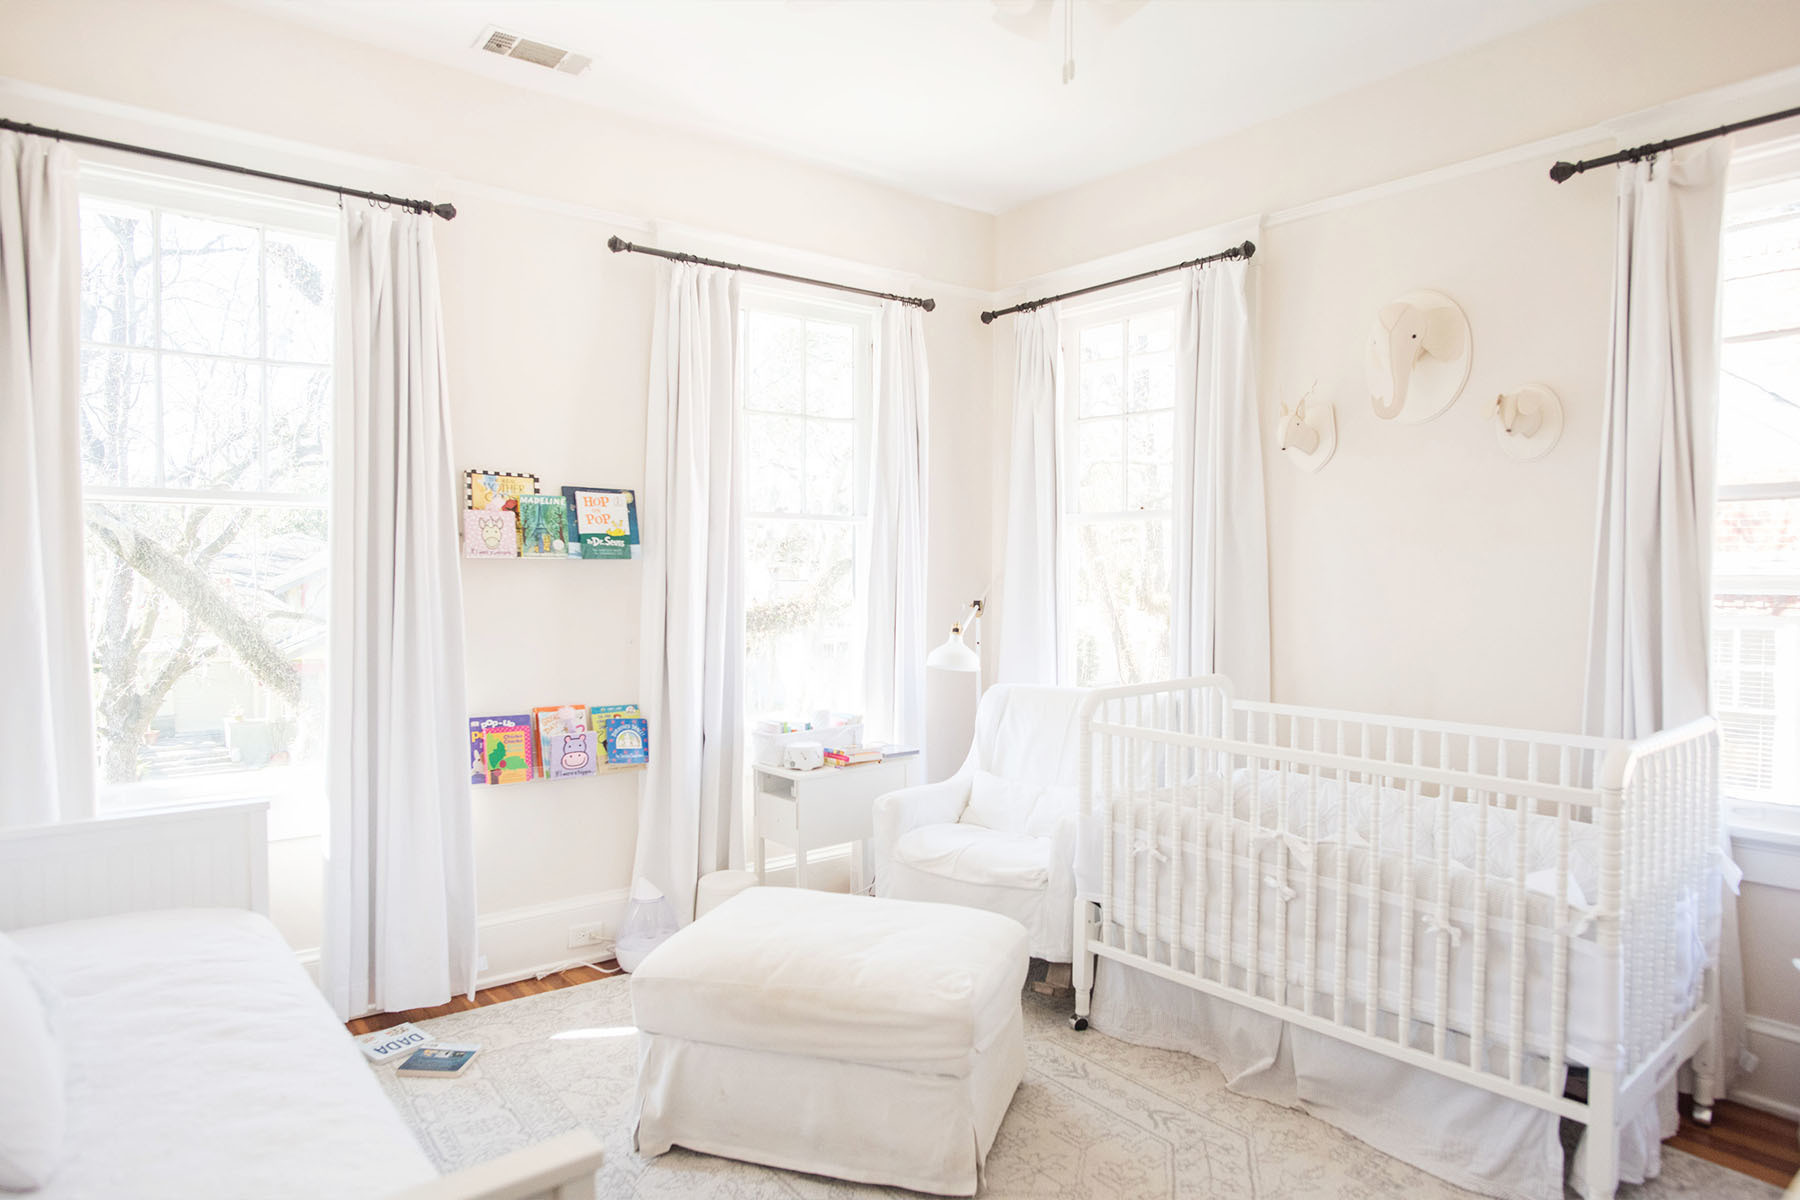 Baby Tempe's crisp, white nursery, provides ample room for play and cozy bedtime stories. Target Crib | Restoration Hardware Armchair | IKEA Ottoman | Restoration Hardware Animal Heads | IKEA Shelves | IKEA Lamp | Restoration Hardware Drapes | Wayfair Bedding.